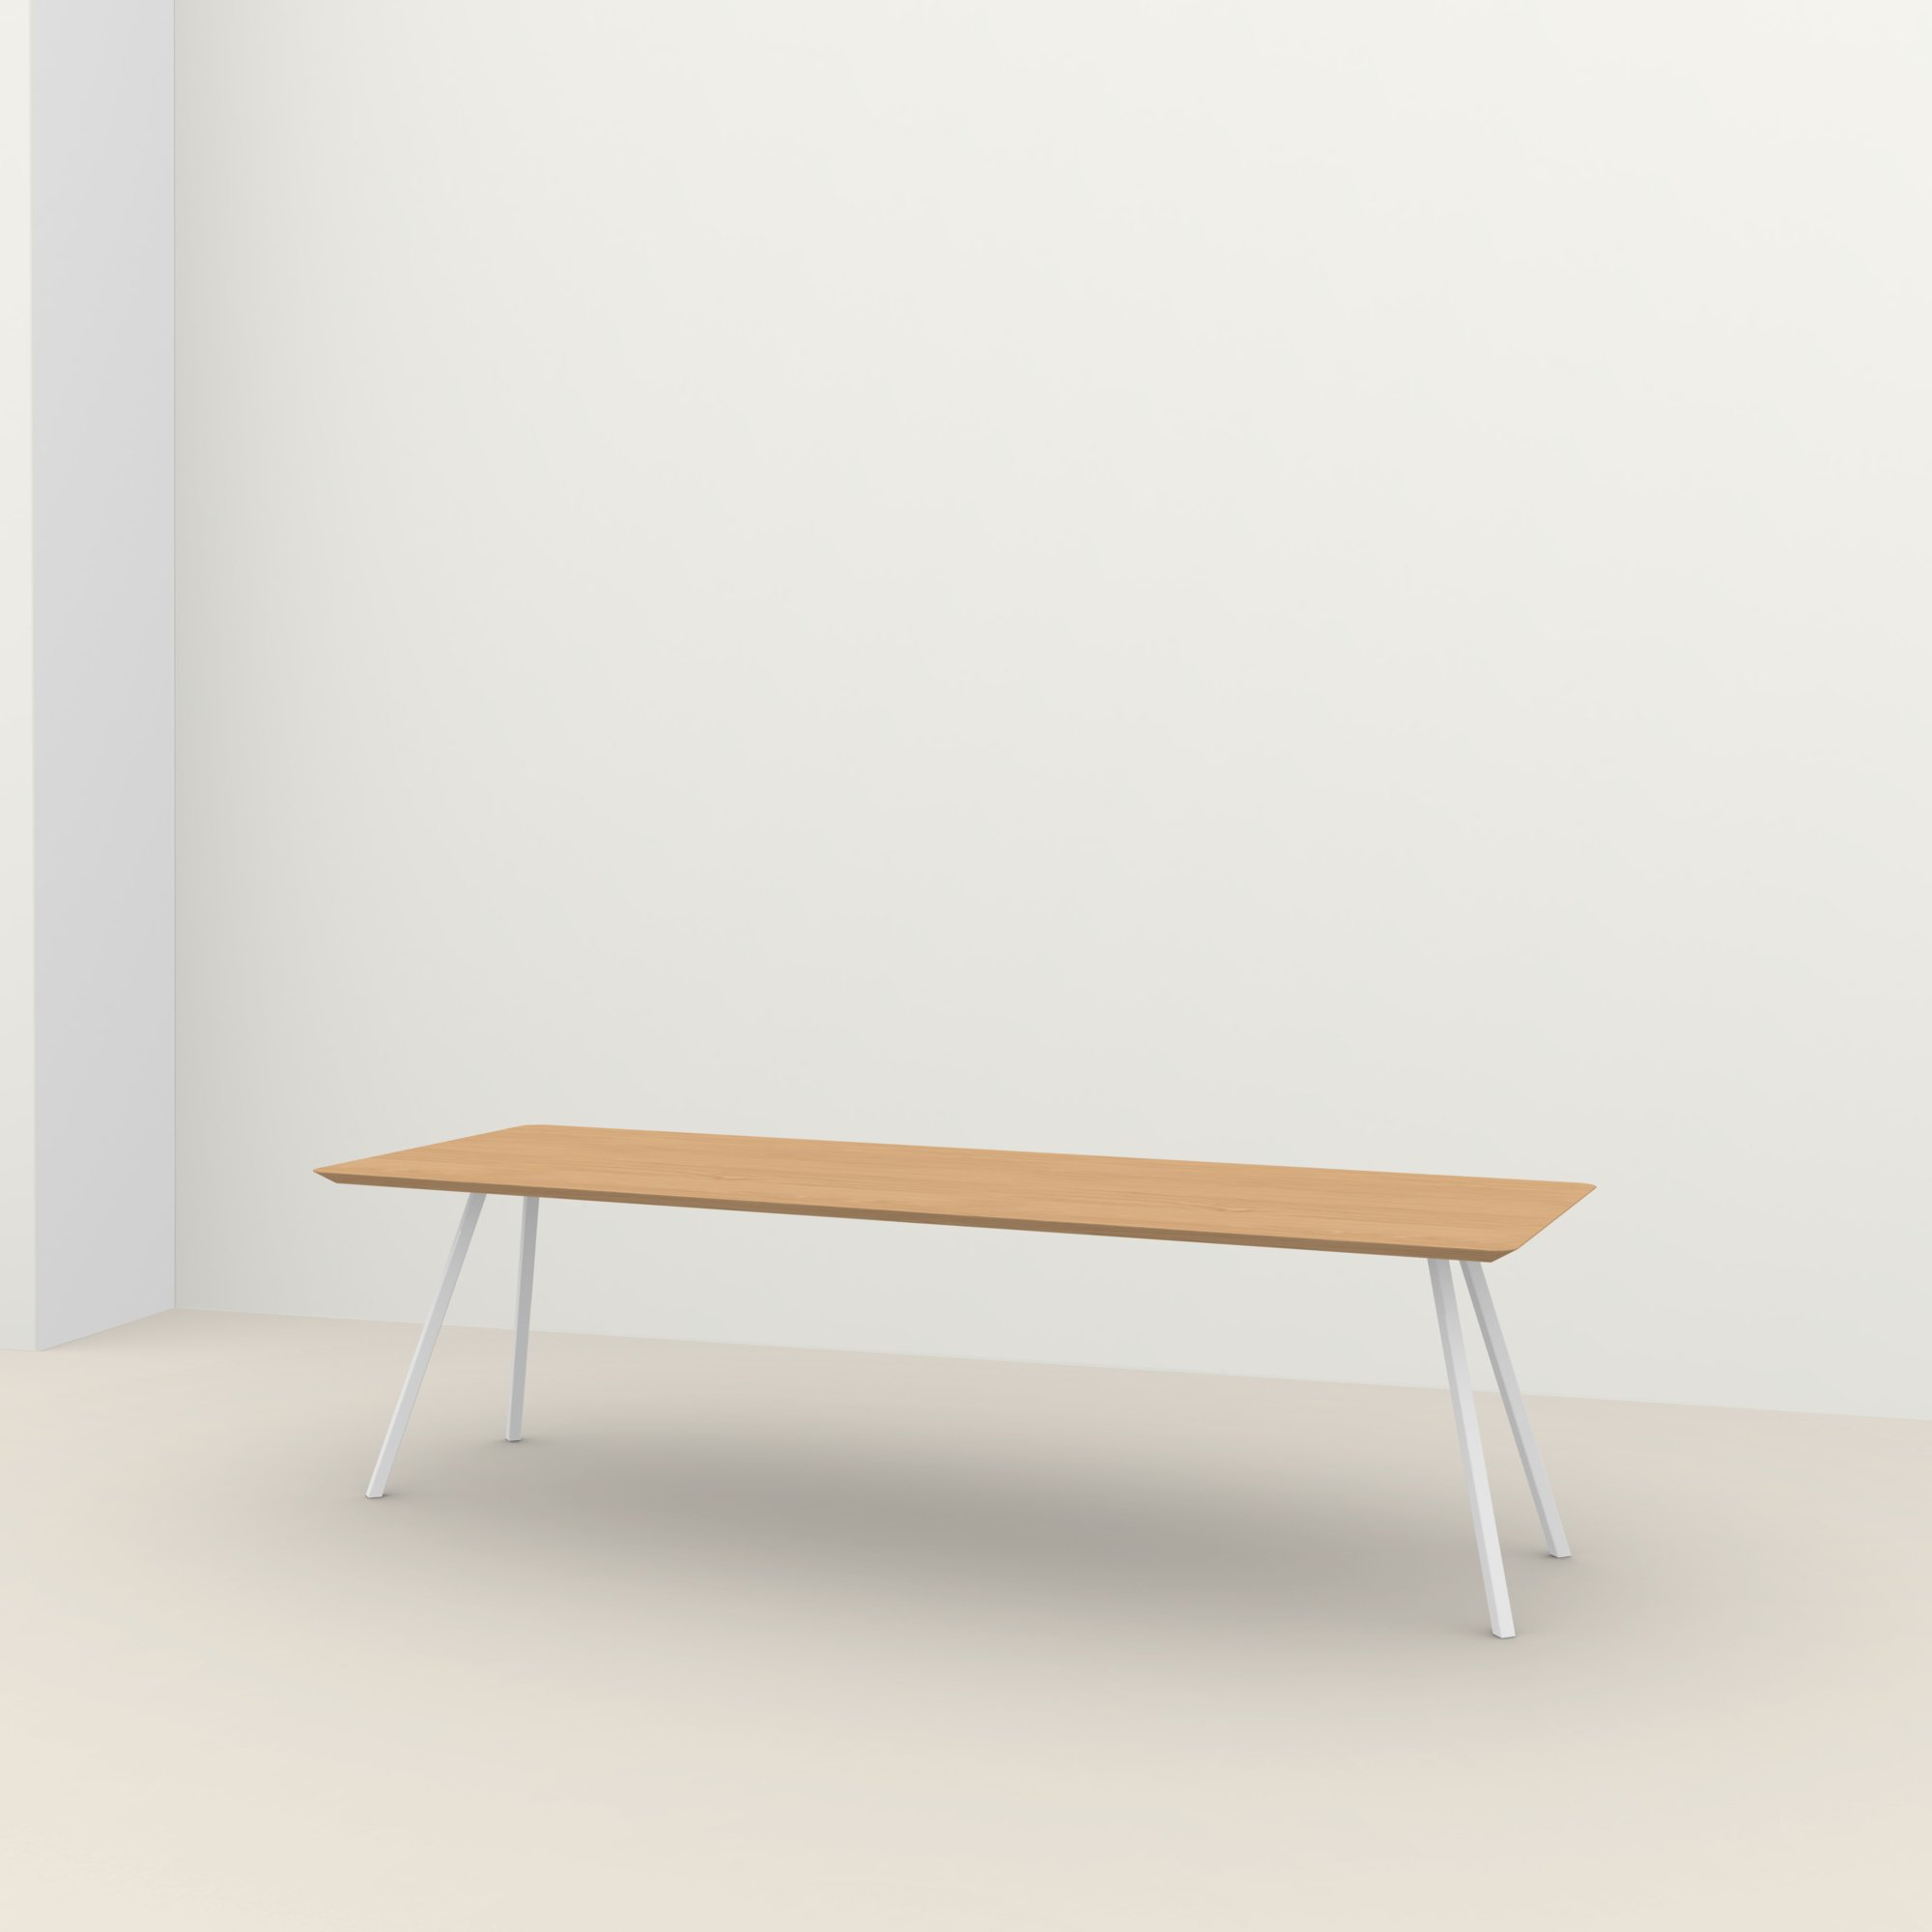 Rechthoekige design tafel op maat | Slim Co Steel white powdercoating | Oak hardwax oil natural light 3041 | Studio HENK |